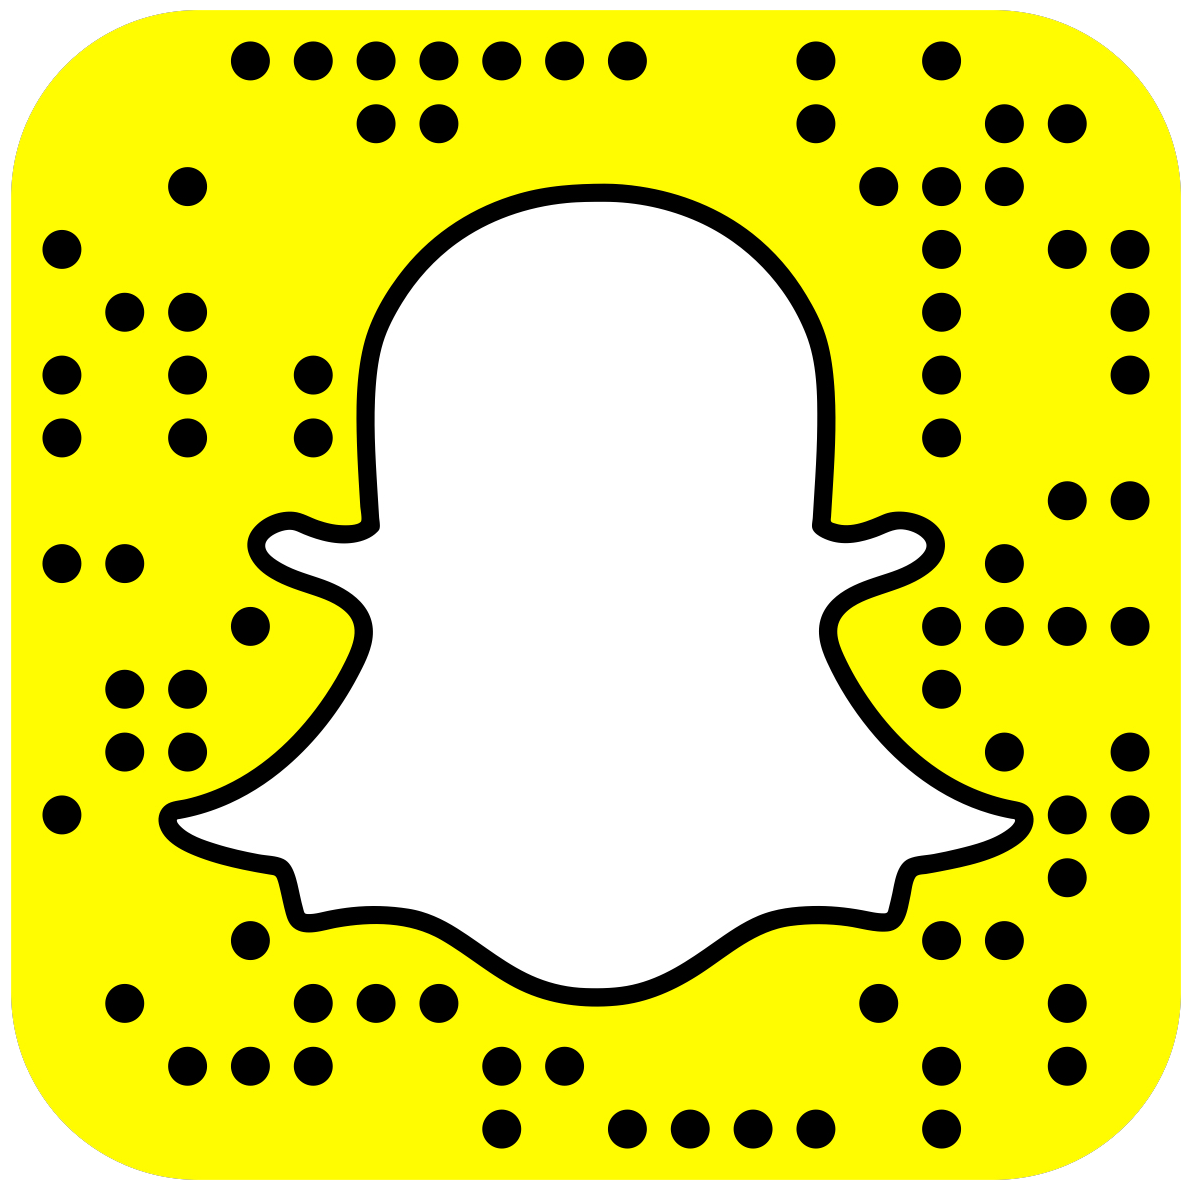 Reese Witherspoon Snapchat username